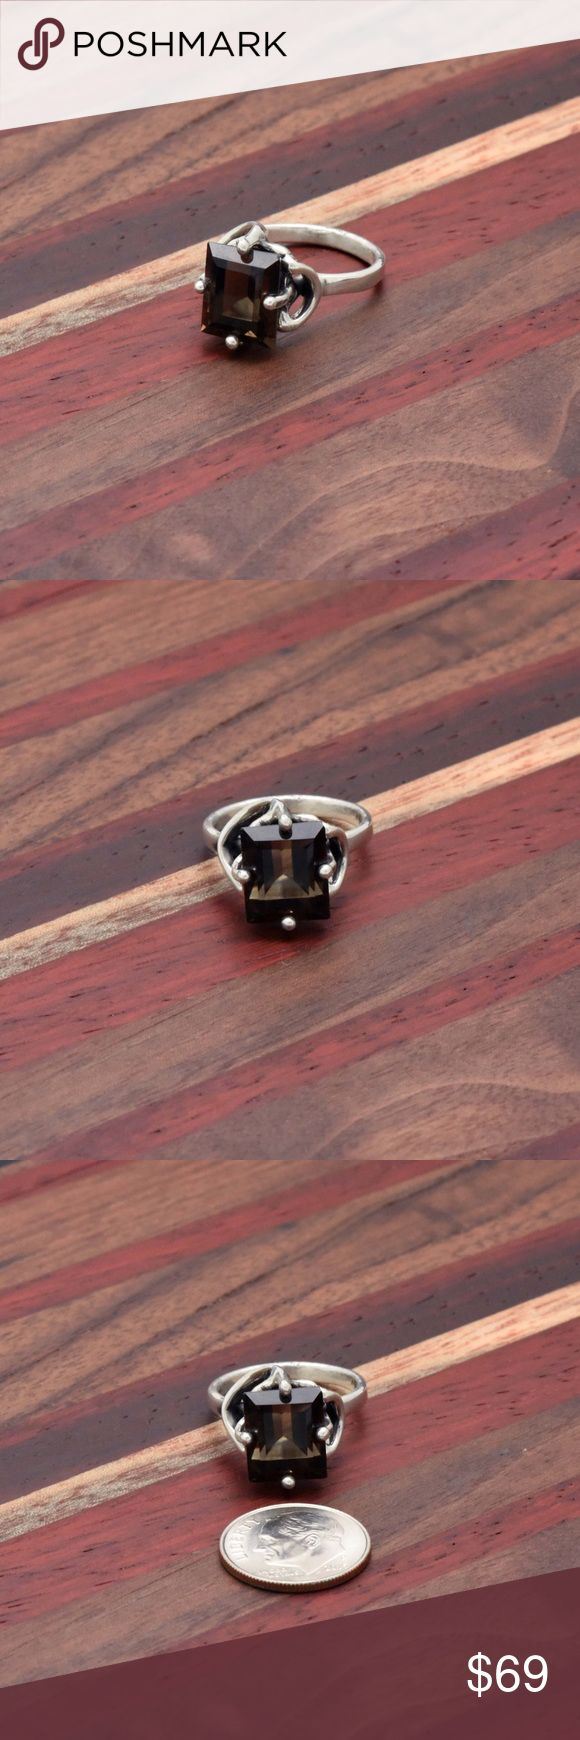 """950 & smoky Topaz ring Stamped """"950"""". Size 7.  Sterling silver is an alloy of silver containing 92.5% by mass of silver and 7.5% by mass of other mThe sterling silver standard has a minimum millesimal fineness of 925.   All my jewelry is solid sterling silver. I do not plate.   Hand crafted in Taxco, Mexico.  Will ship within 2 days Jewelry Rings"""